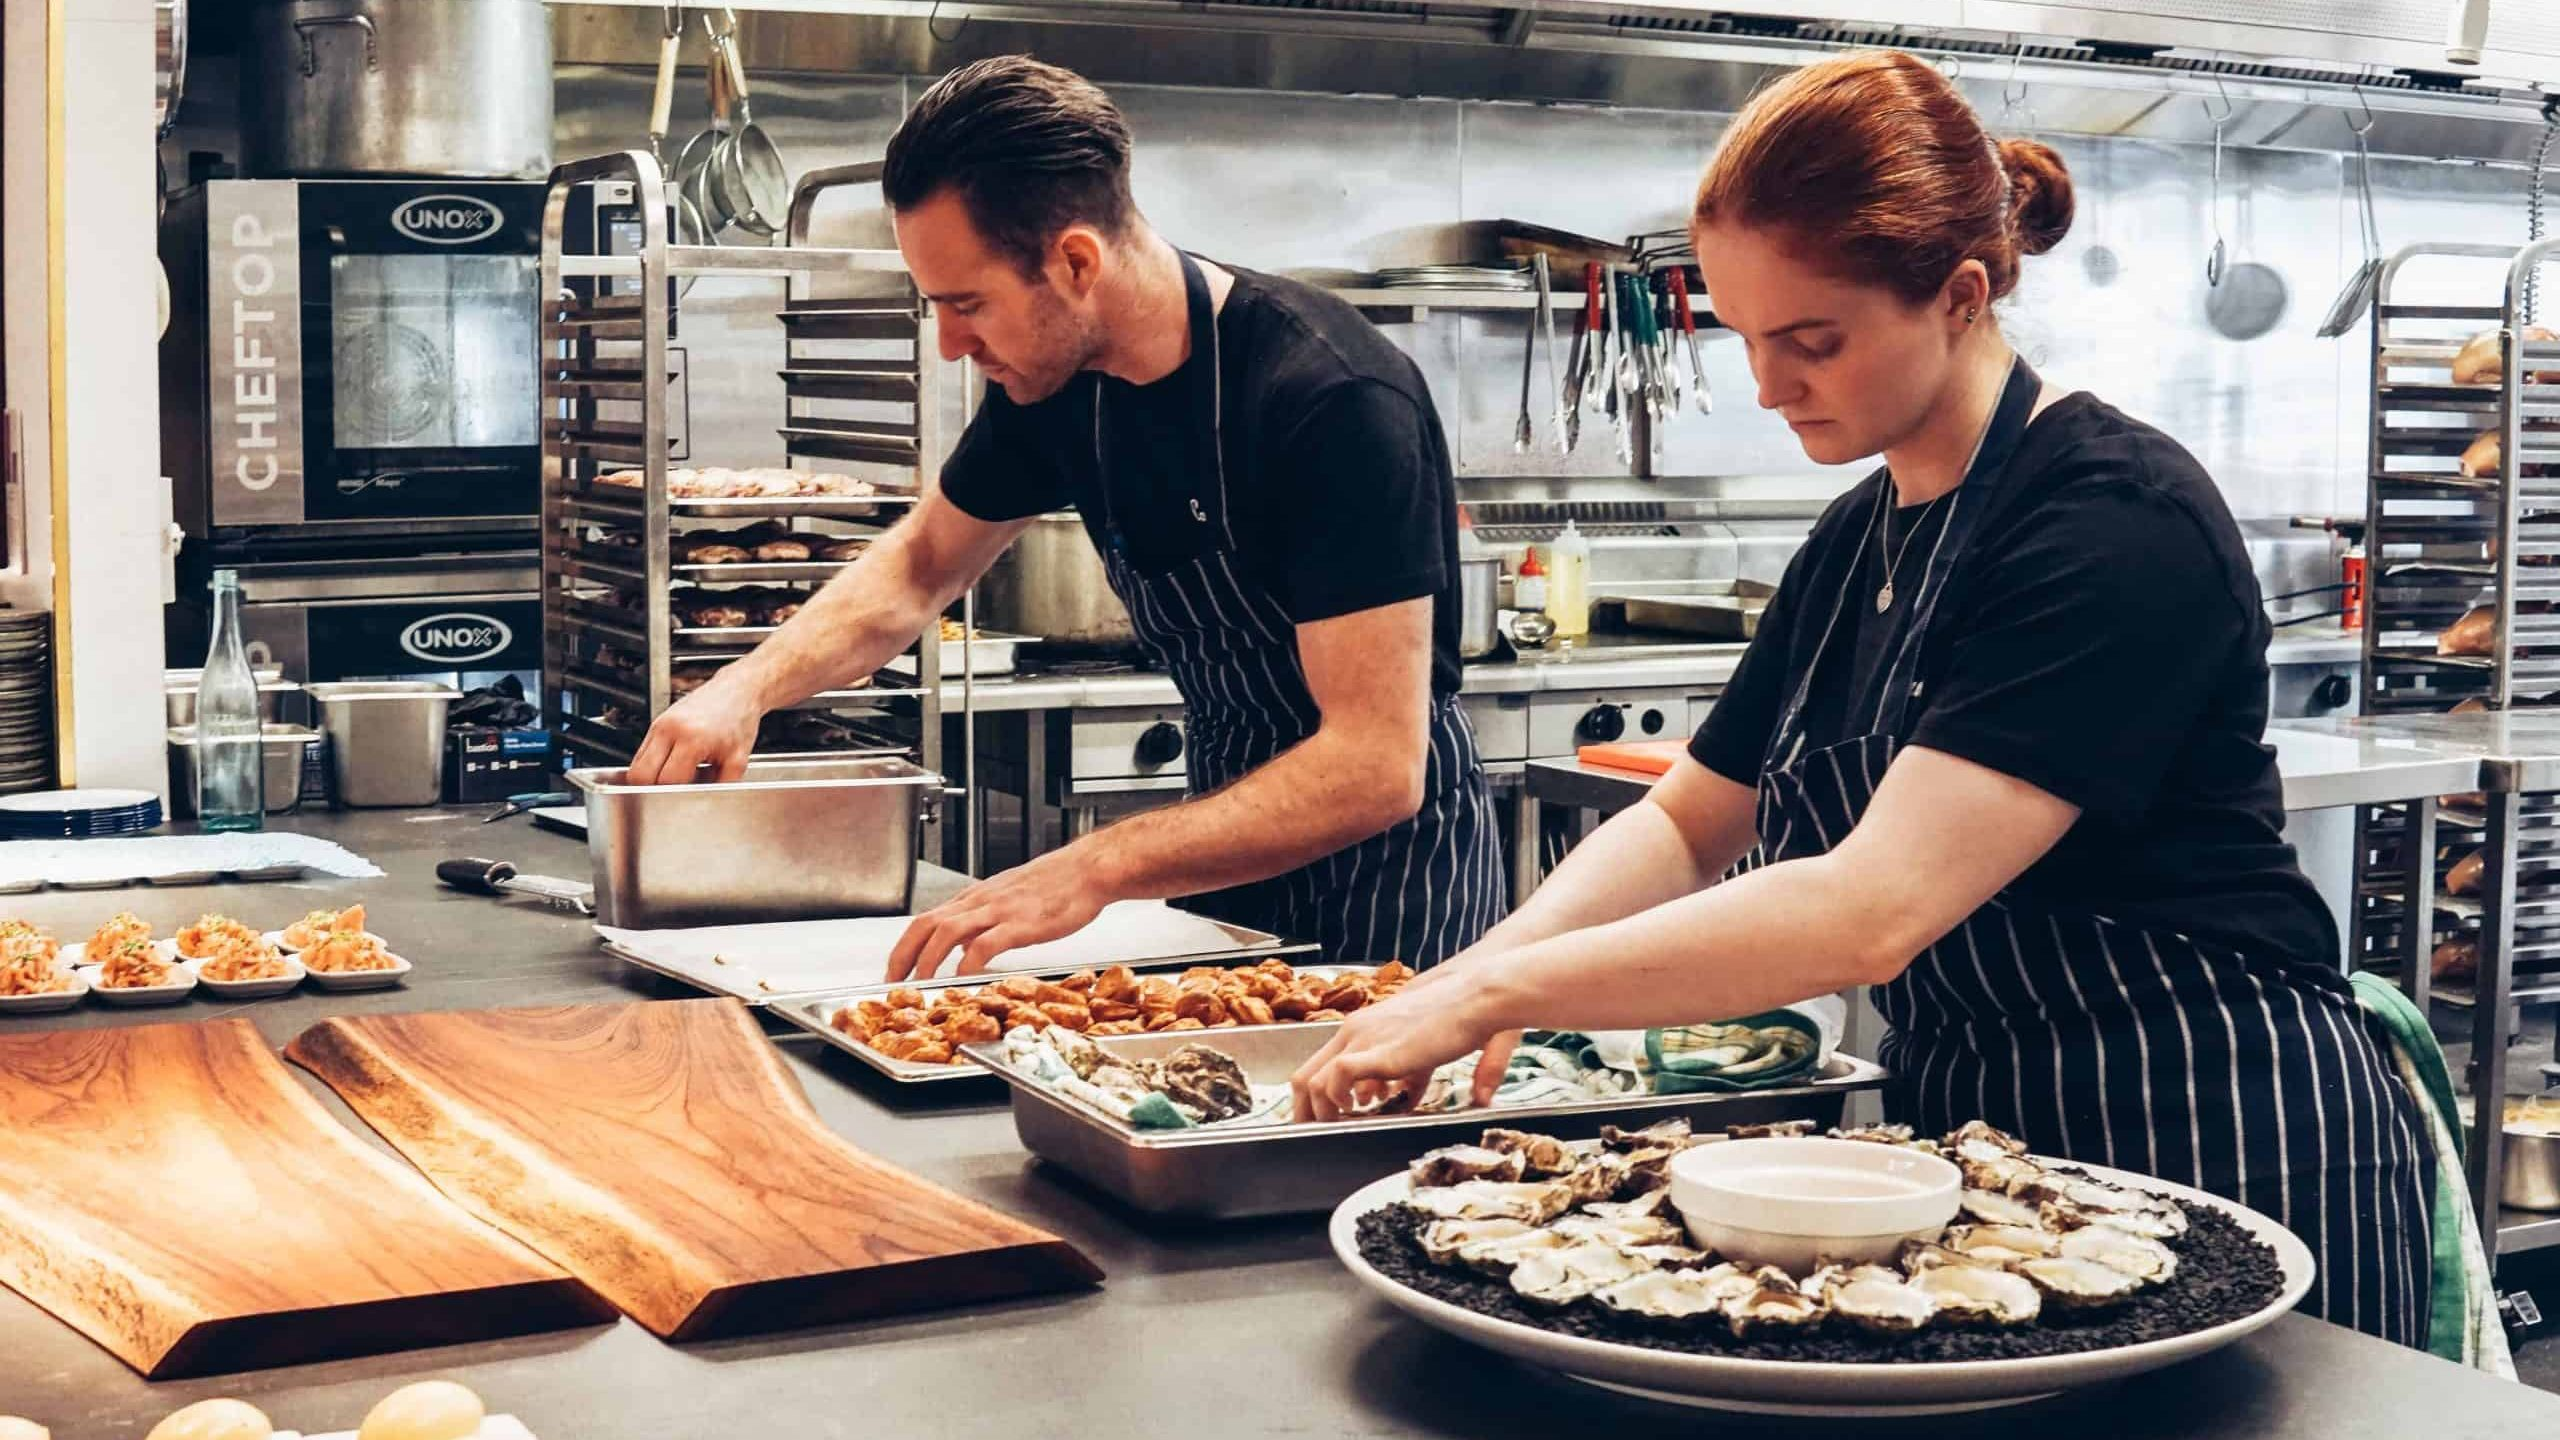 7 Things to Know Before Choosing a Culinary School